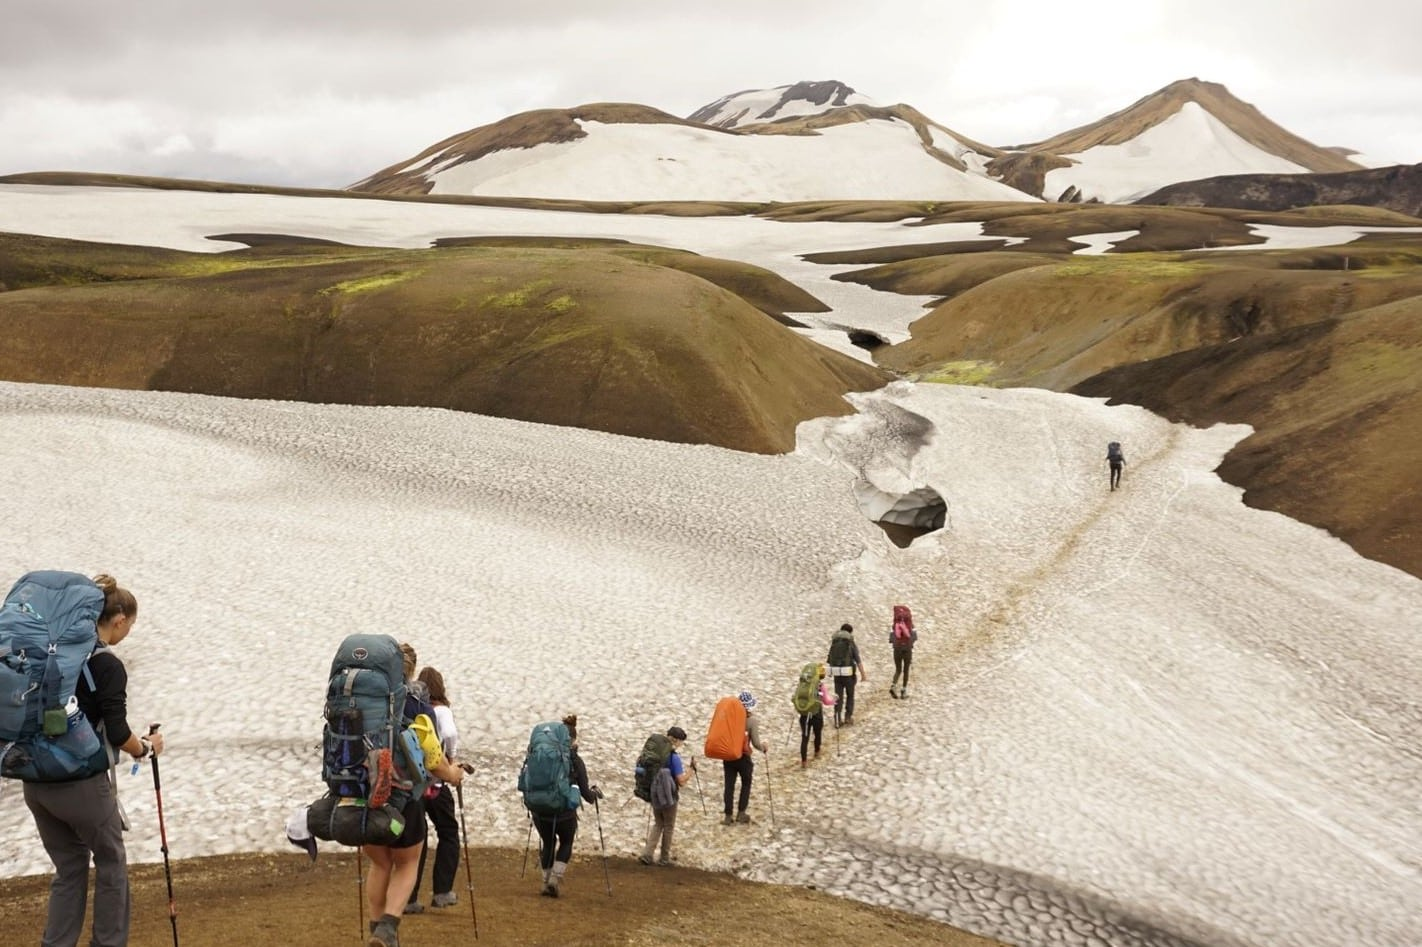 Campers hike single file while traversing the wilderness of Iceland this Summer